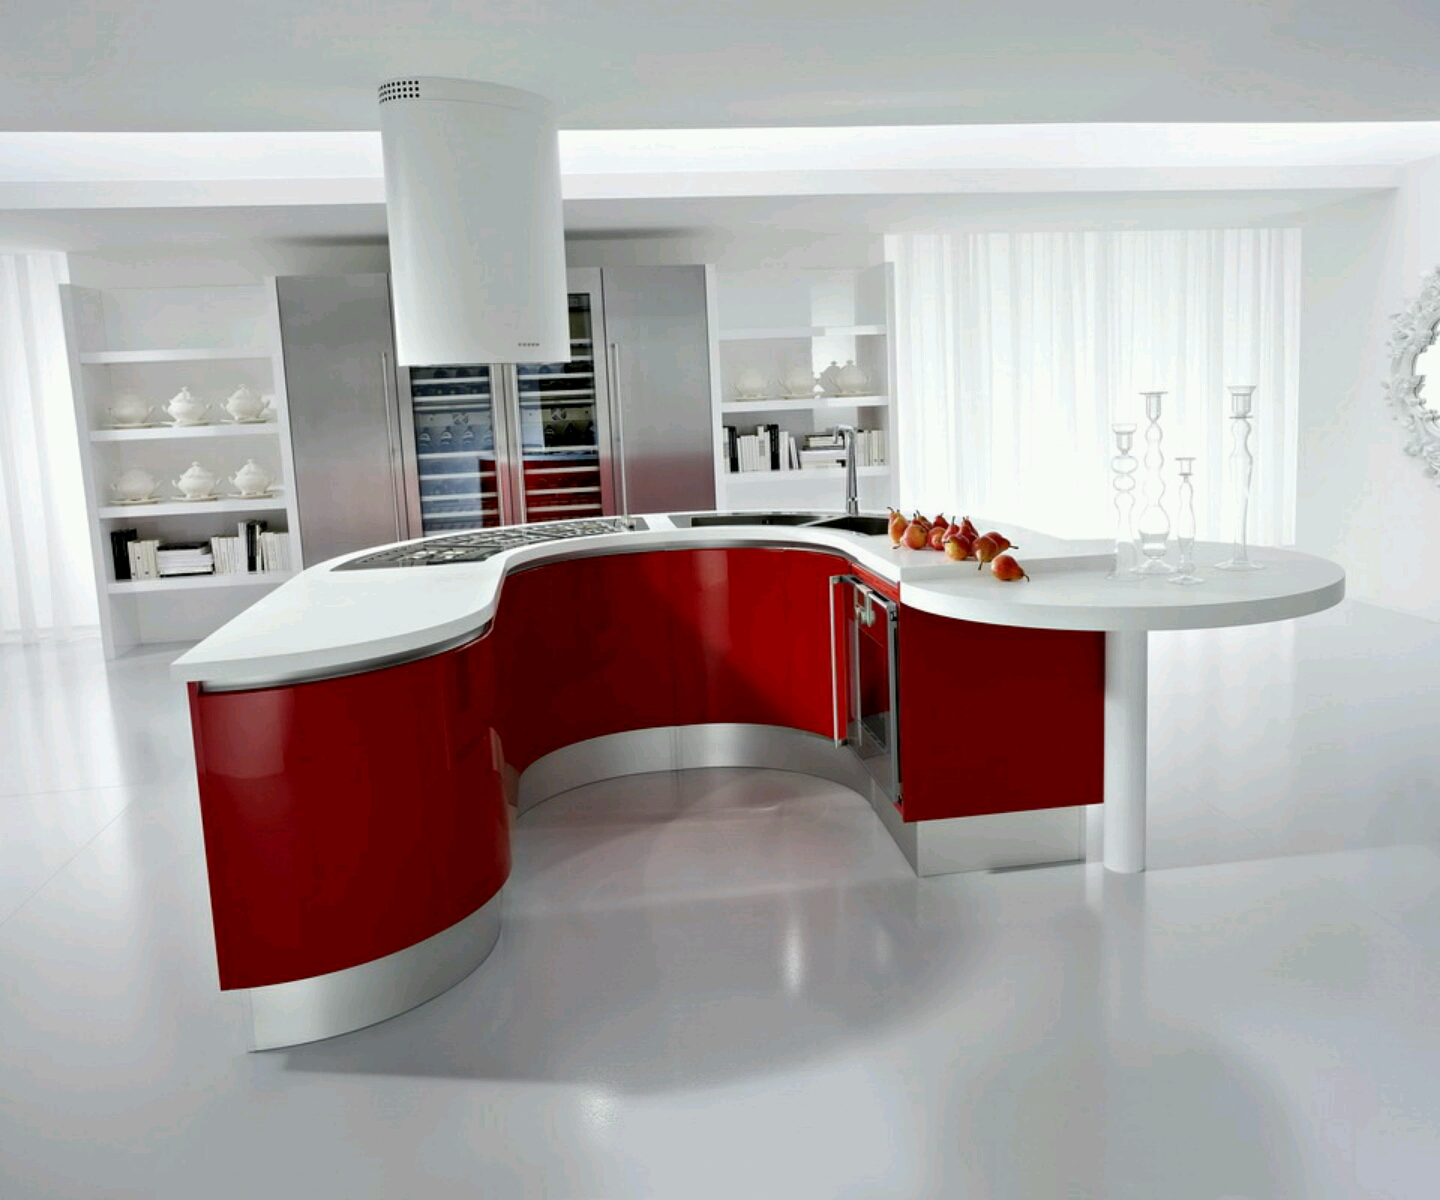 Modern kitchen cabinets designs ideas furniture gallery for Kitchen modern design ideas